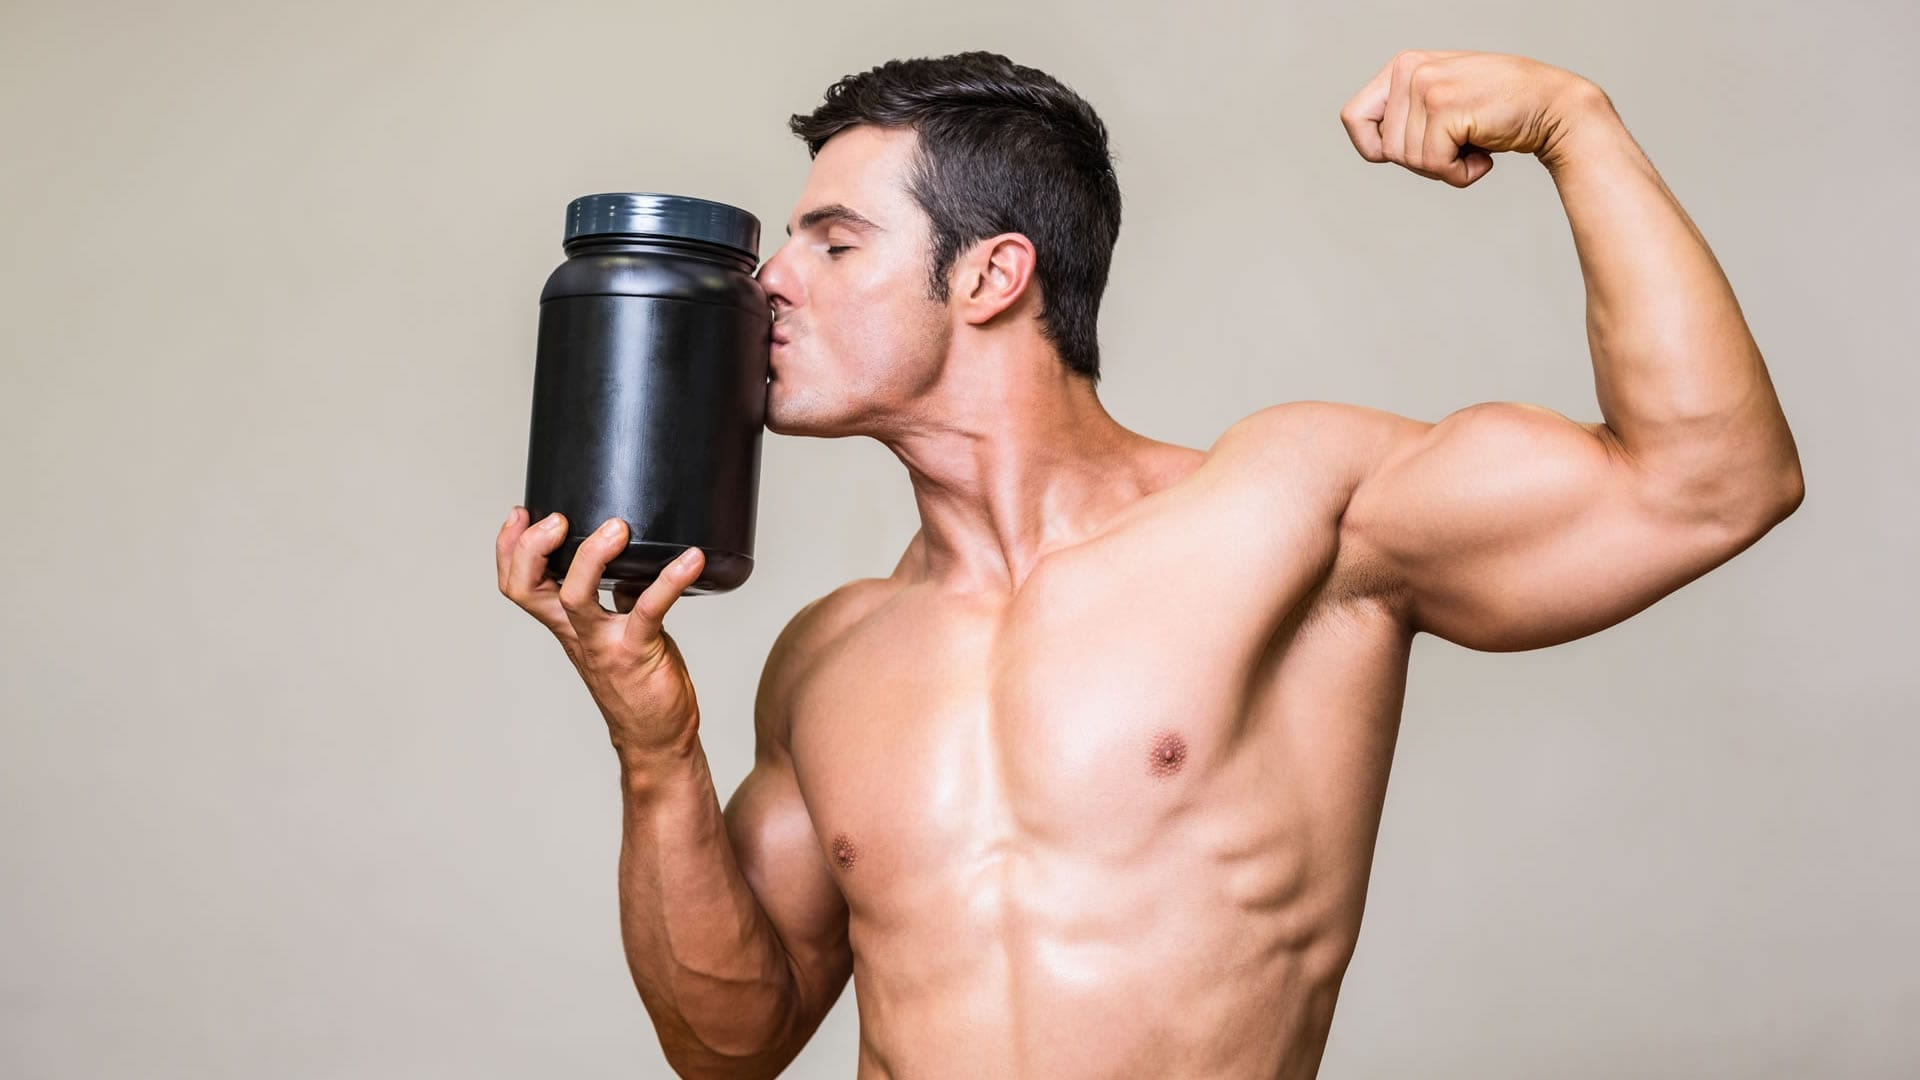 Muscle growth gym protein